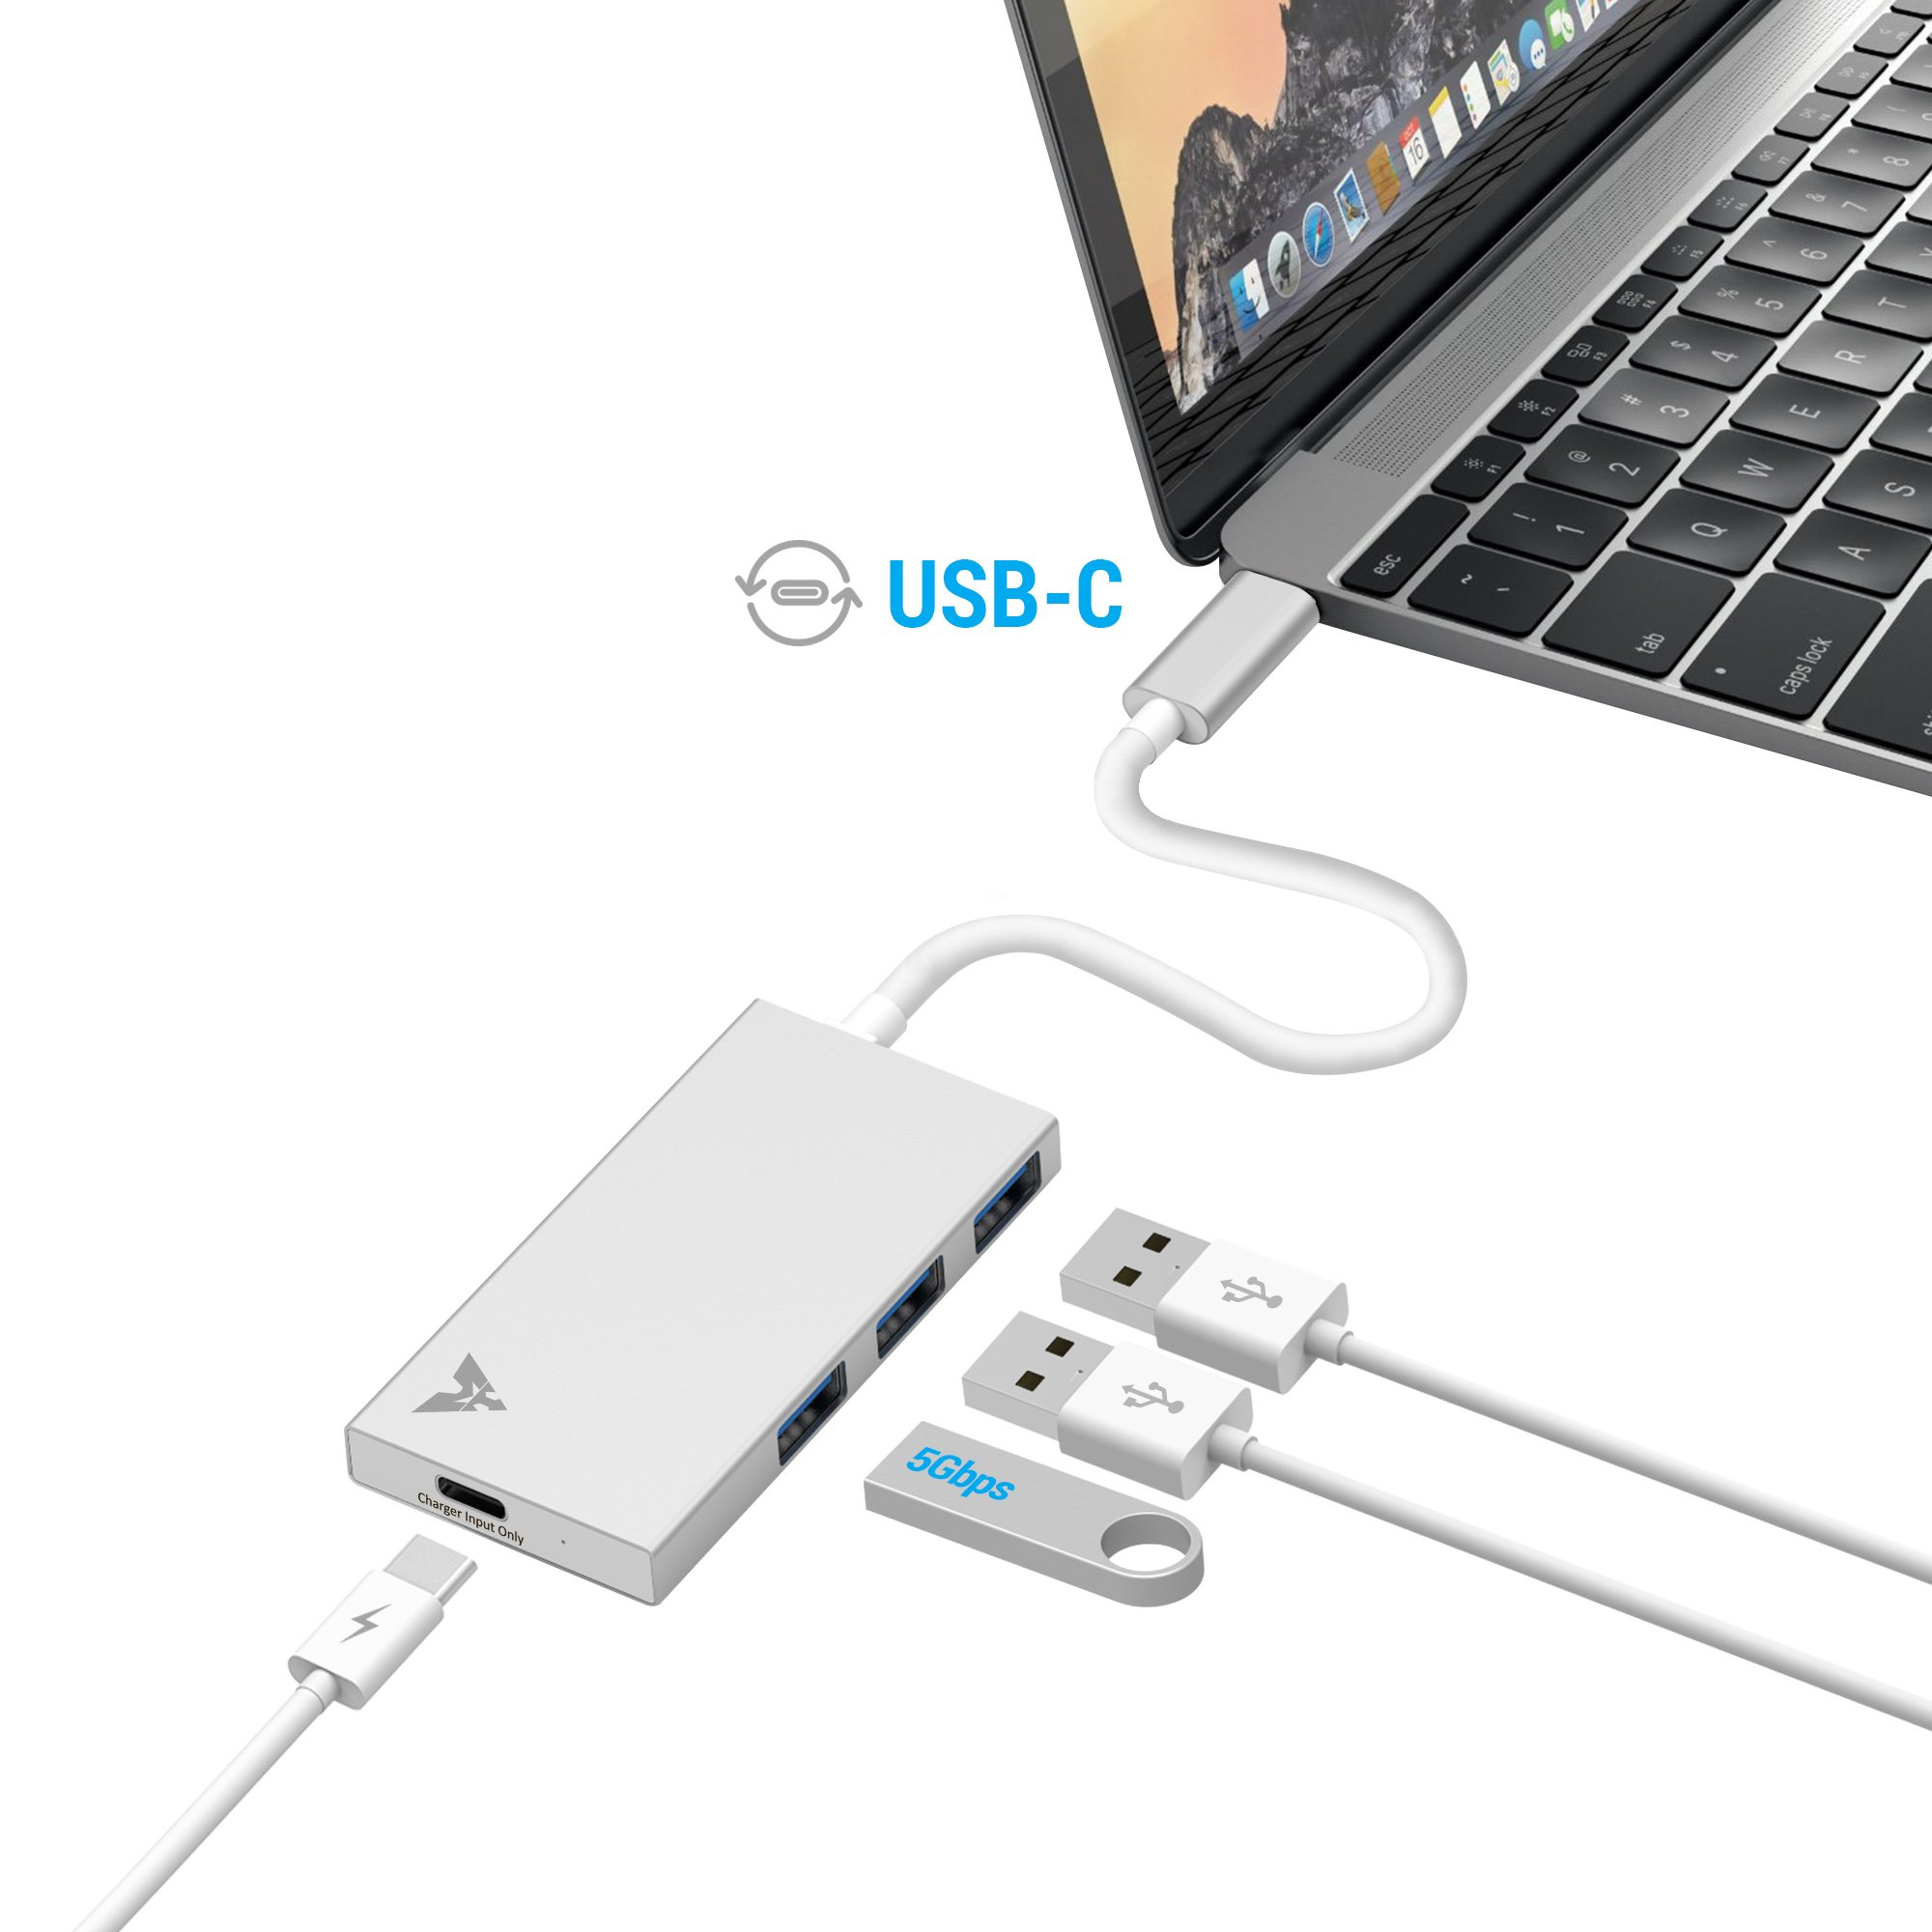 MAKETECH Ultra Slim Aluminum USB Type-C HUB with 3 USB 3.0 Data Ports and 1 USB-C Passthrough Charging Port for New Macbook Pro 2016, New Macbook 2015/2016, Chromebook Pixel and More Type-C Devices